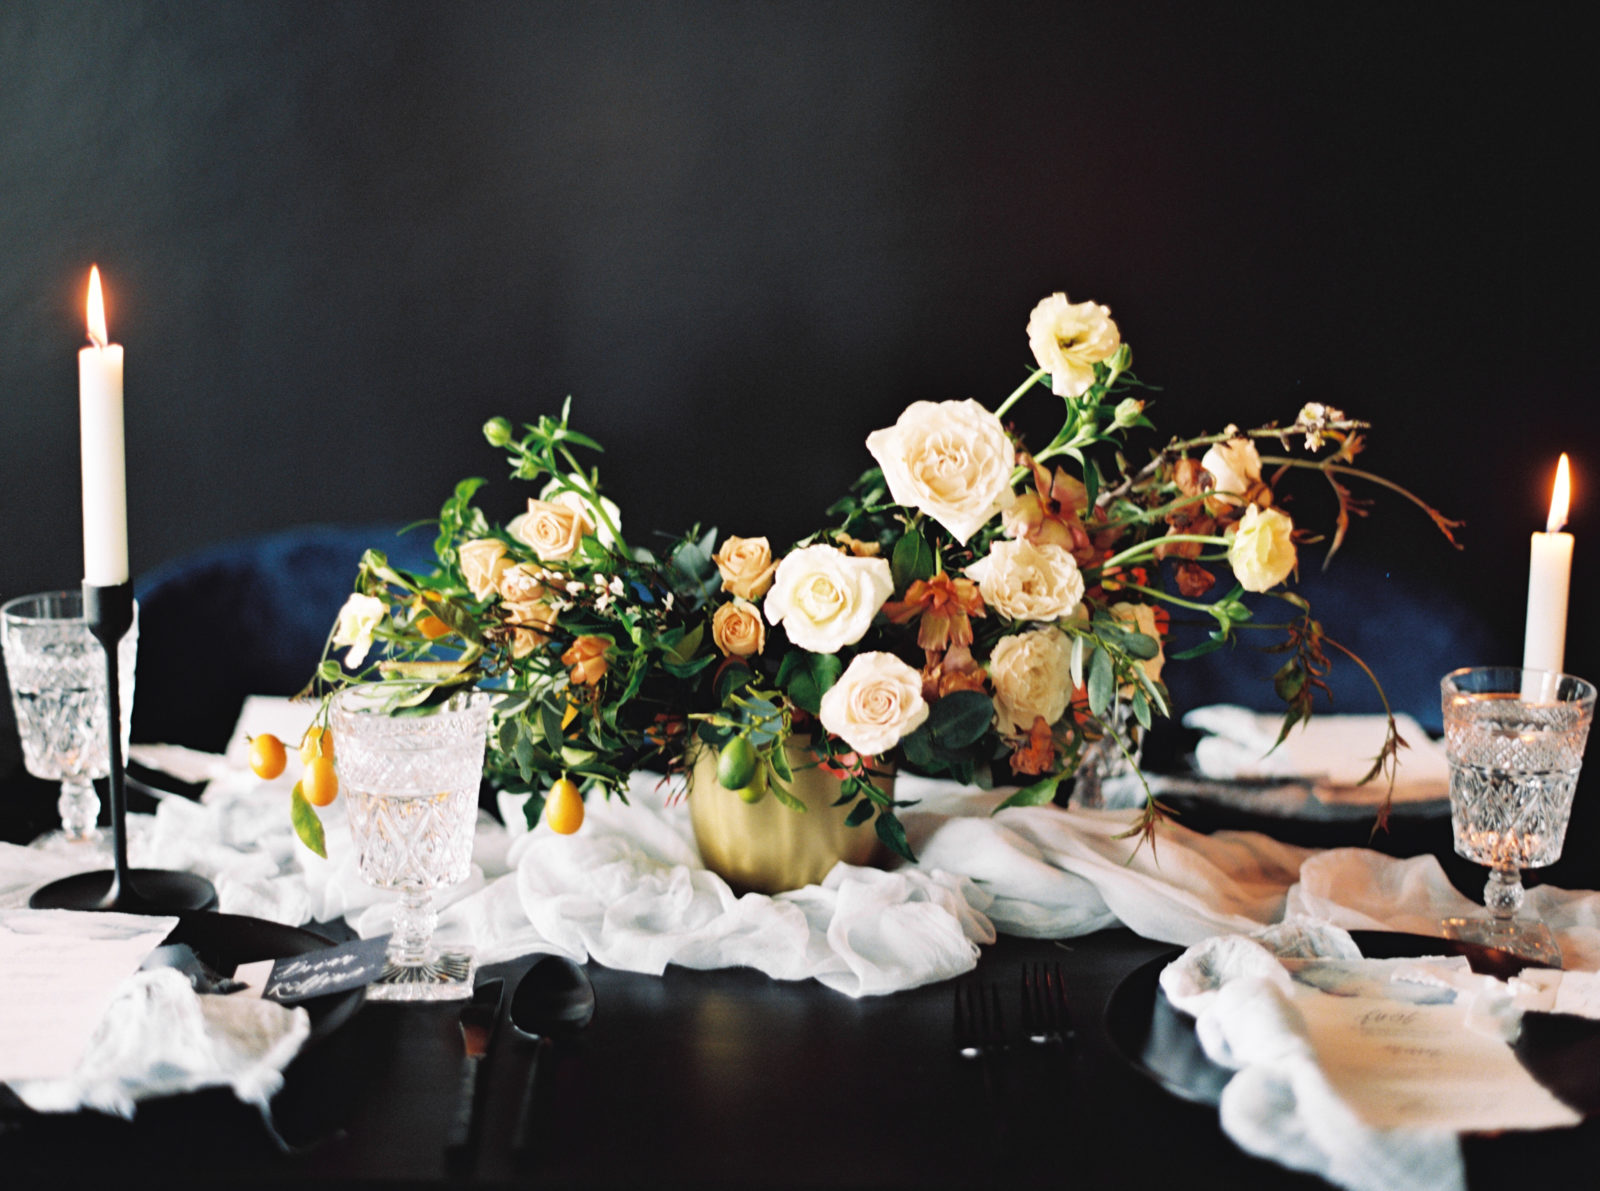 Wedding centerpiece inspiration for Monica wedding editorial.